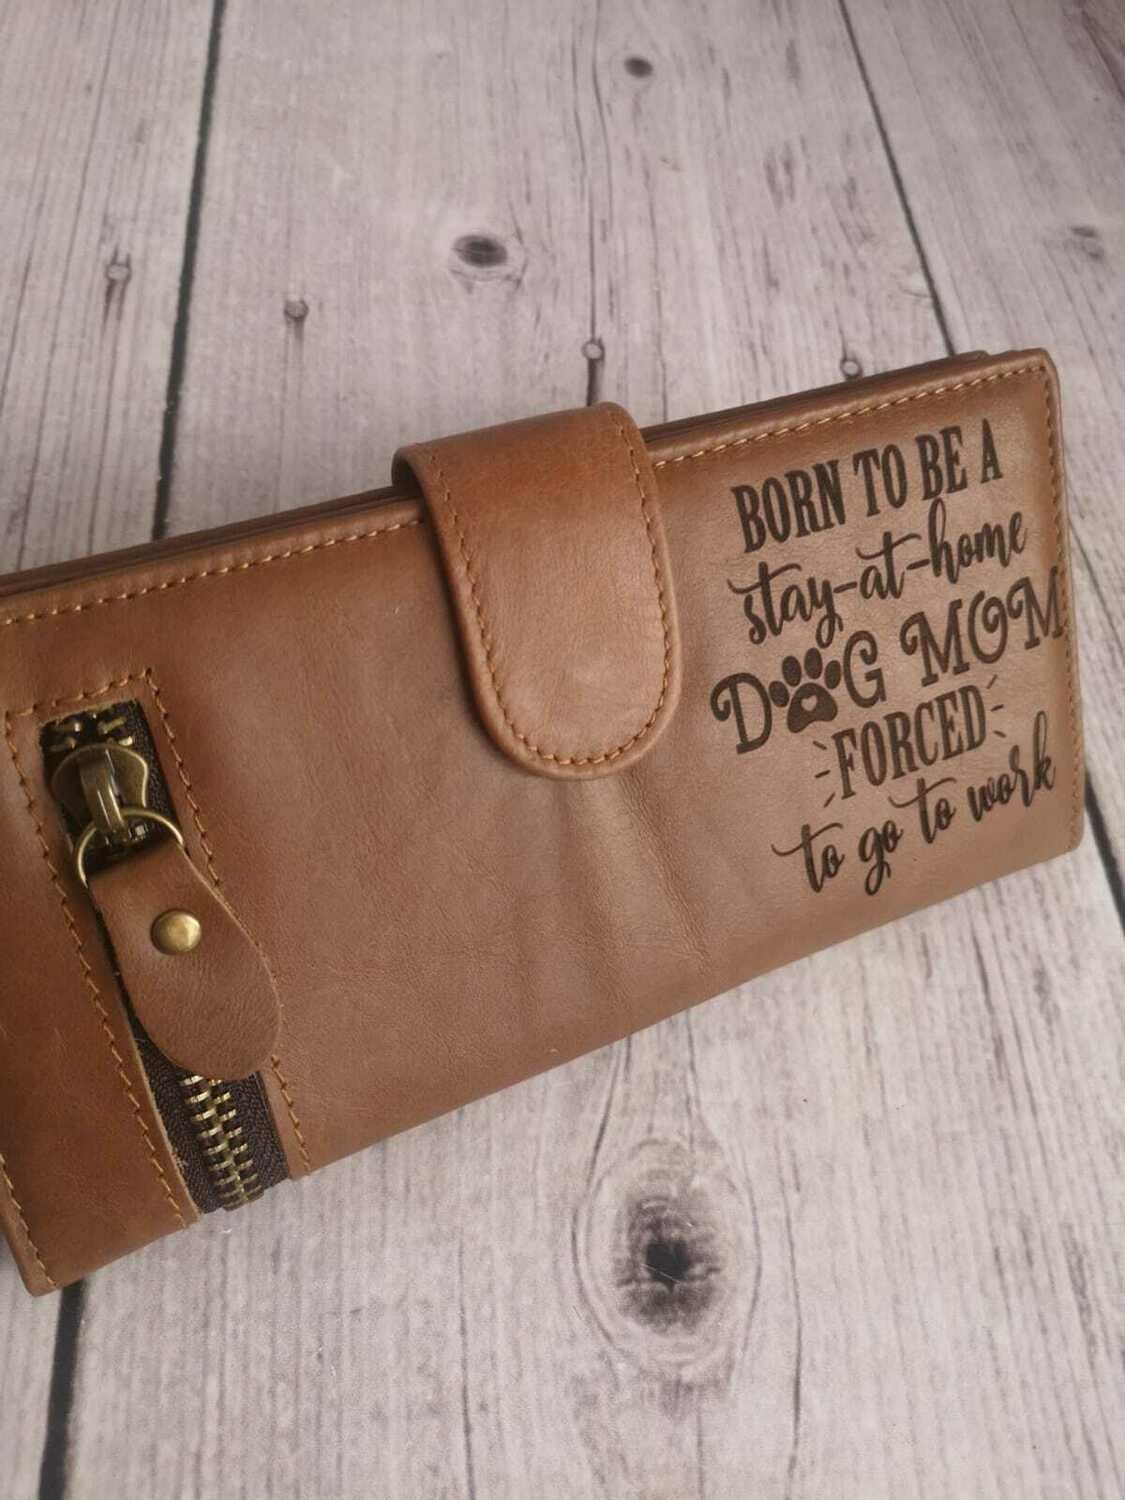 Exclusive Long Dog Wallet - Born to be a stay at home Dog Mom